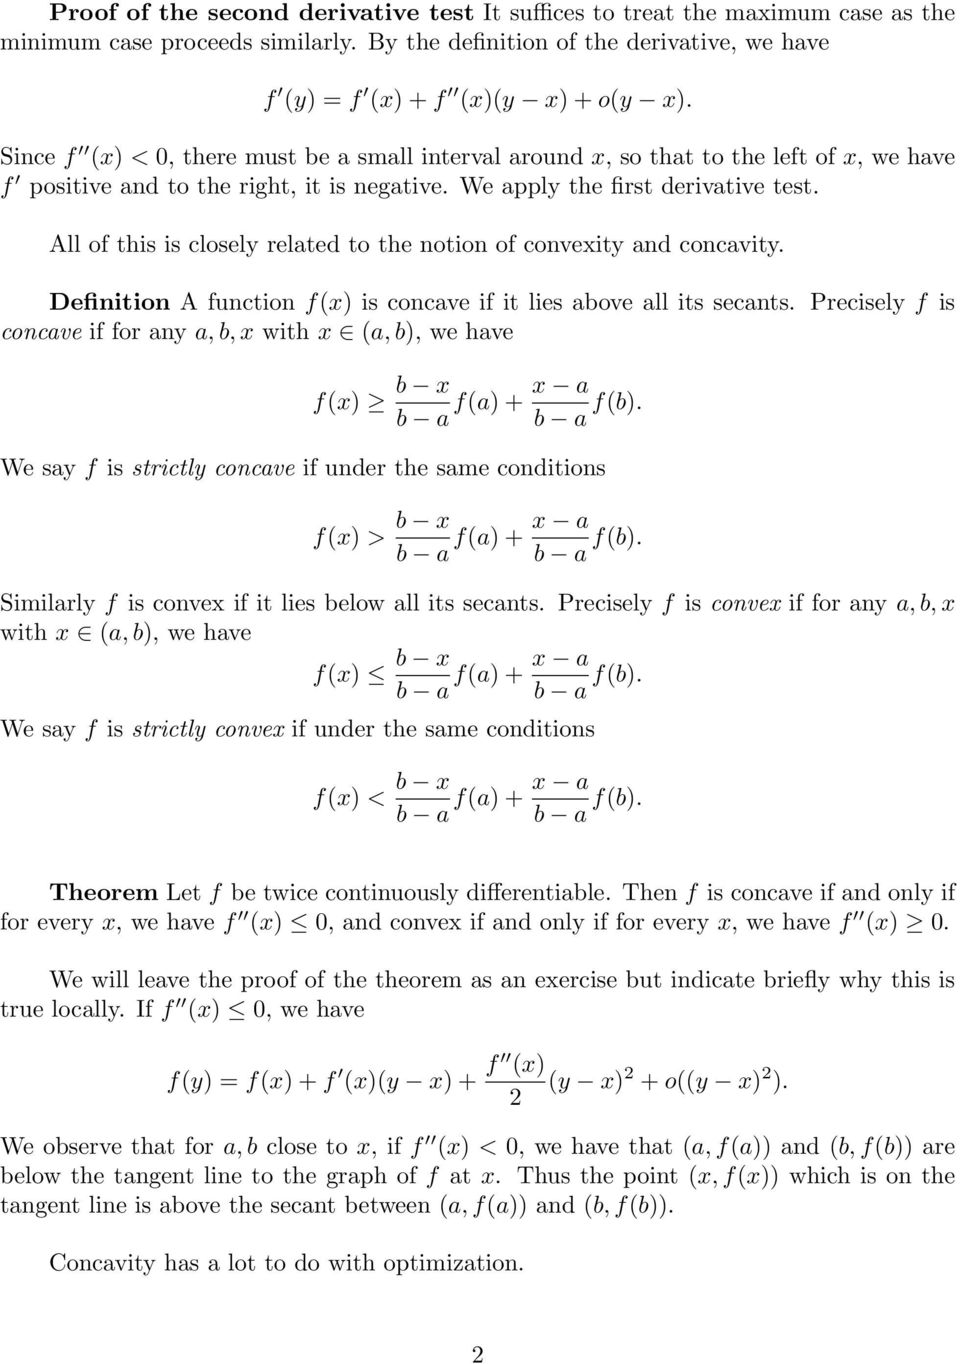 All of this is closely related to the notion of convexity and concavity. Definition A function f(x) is concave if it lies above all its secants.